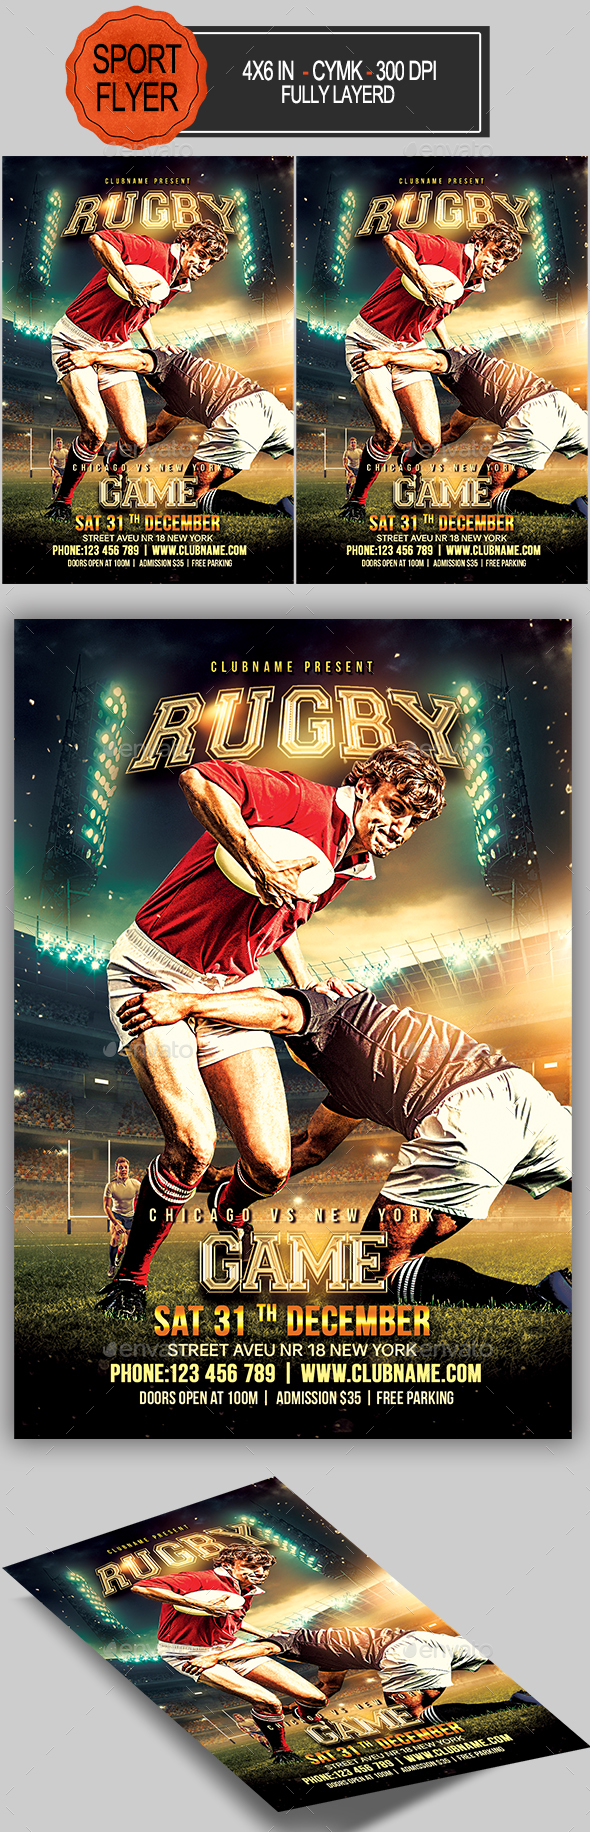 Rugby Flyer - Sports Events